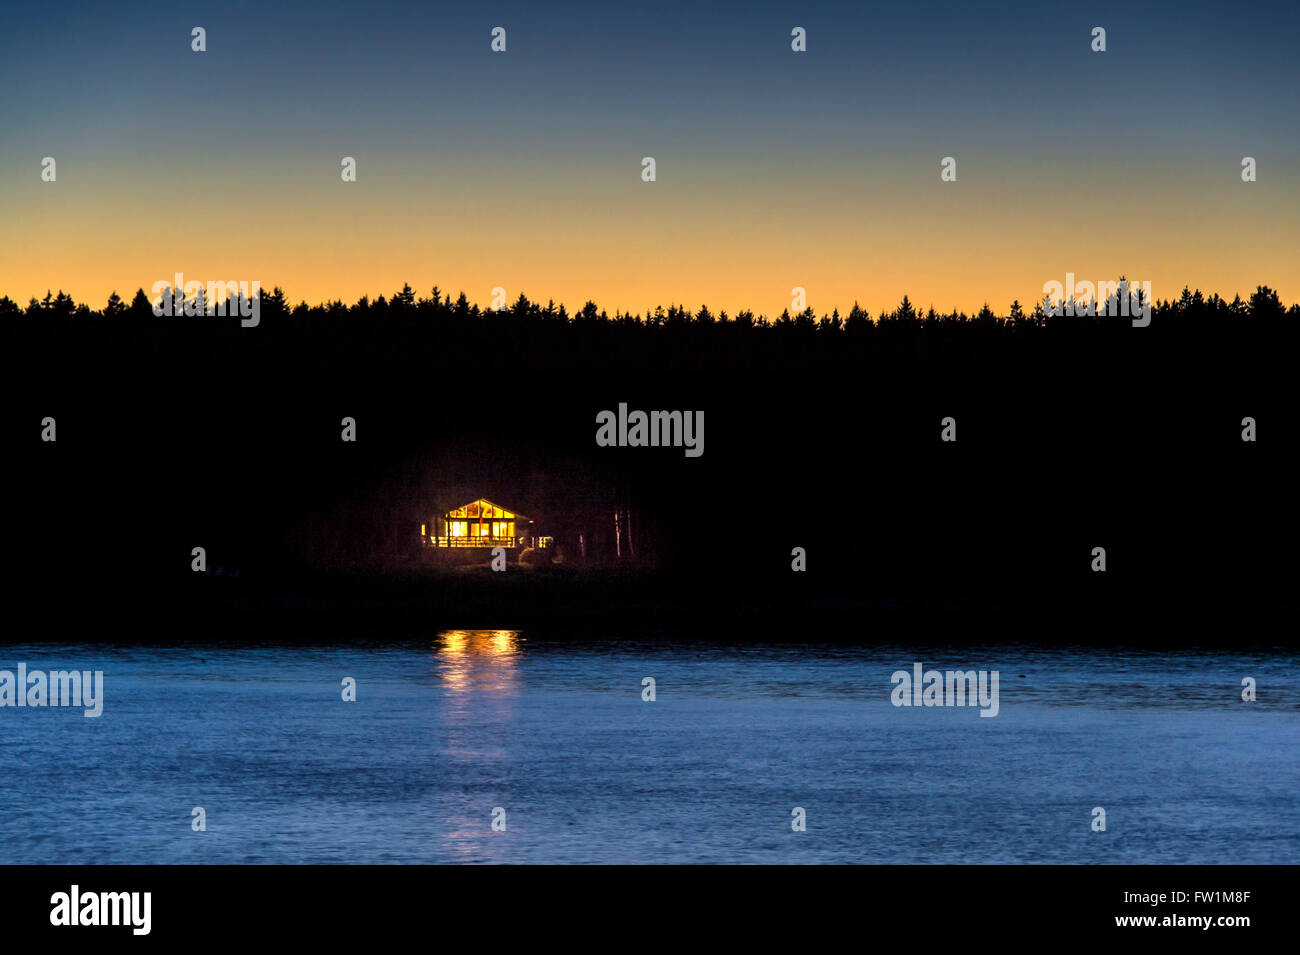 Small waterfront cabin in a remote secluded location. - Stock Image